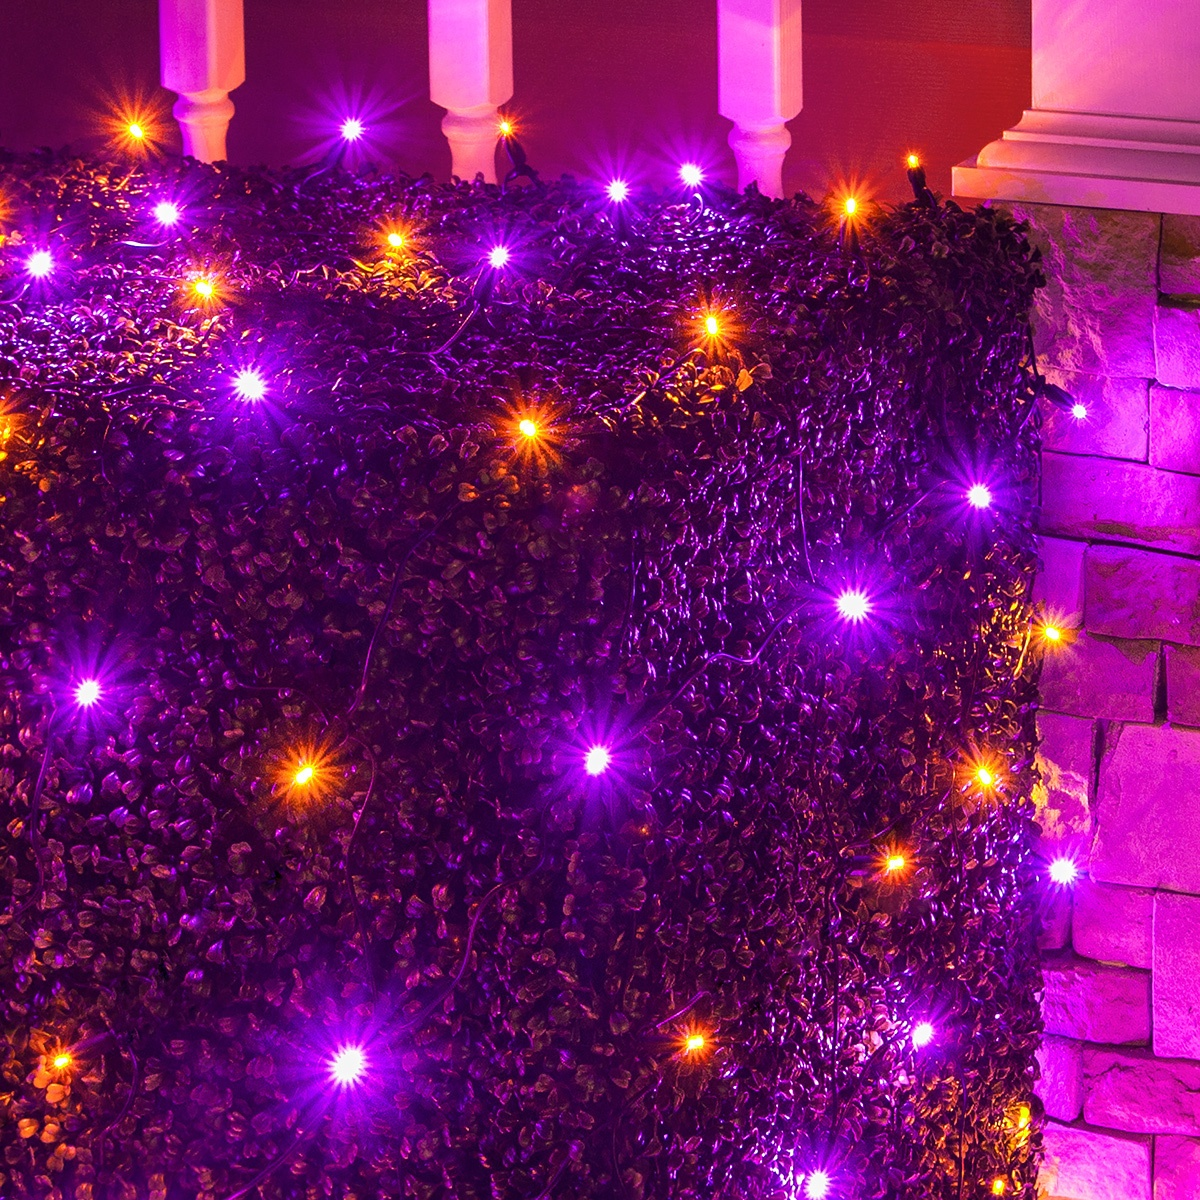 led net lights 4 39 x 6 39 led net lights 100 purple orange lamps black wire. Black Bedroom Furniture Sets. Home Design Ideas